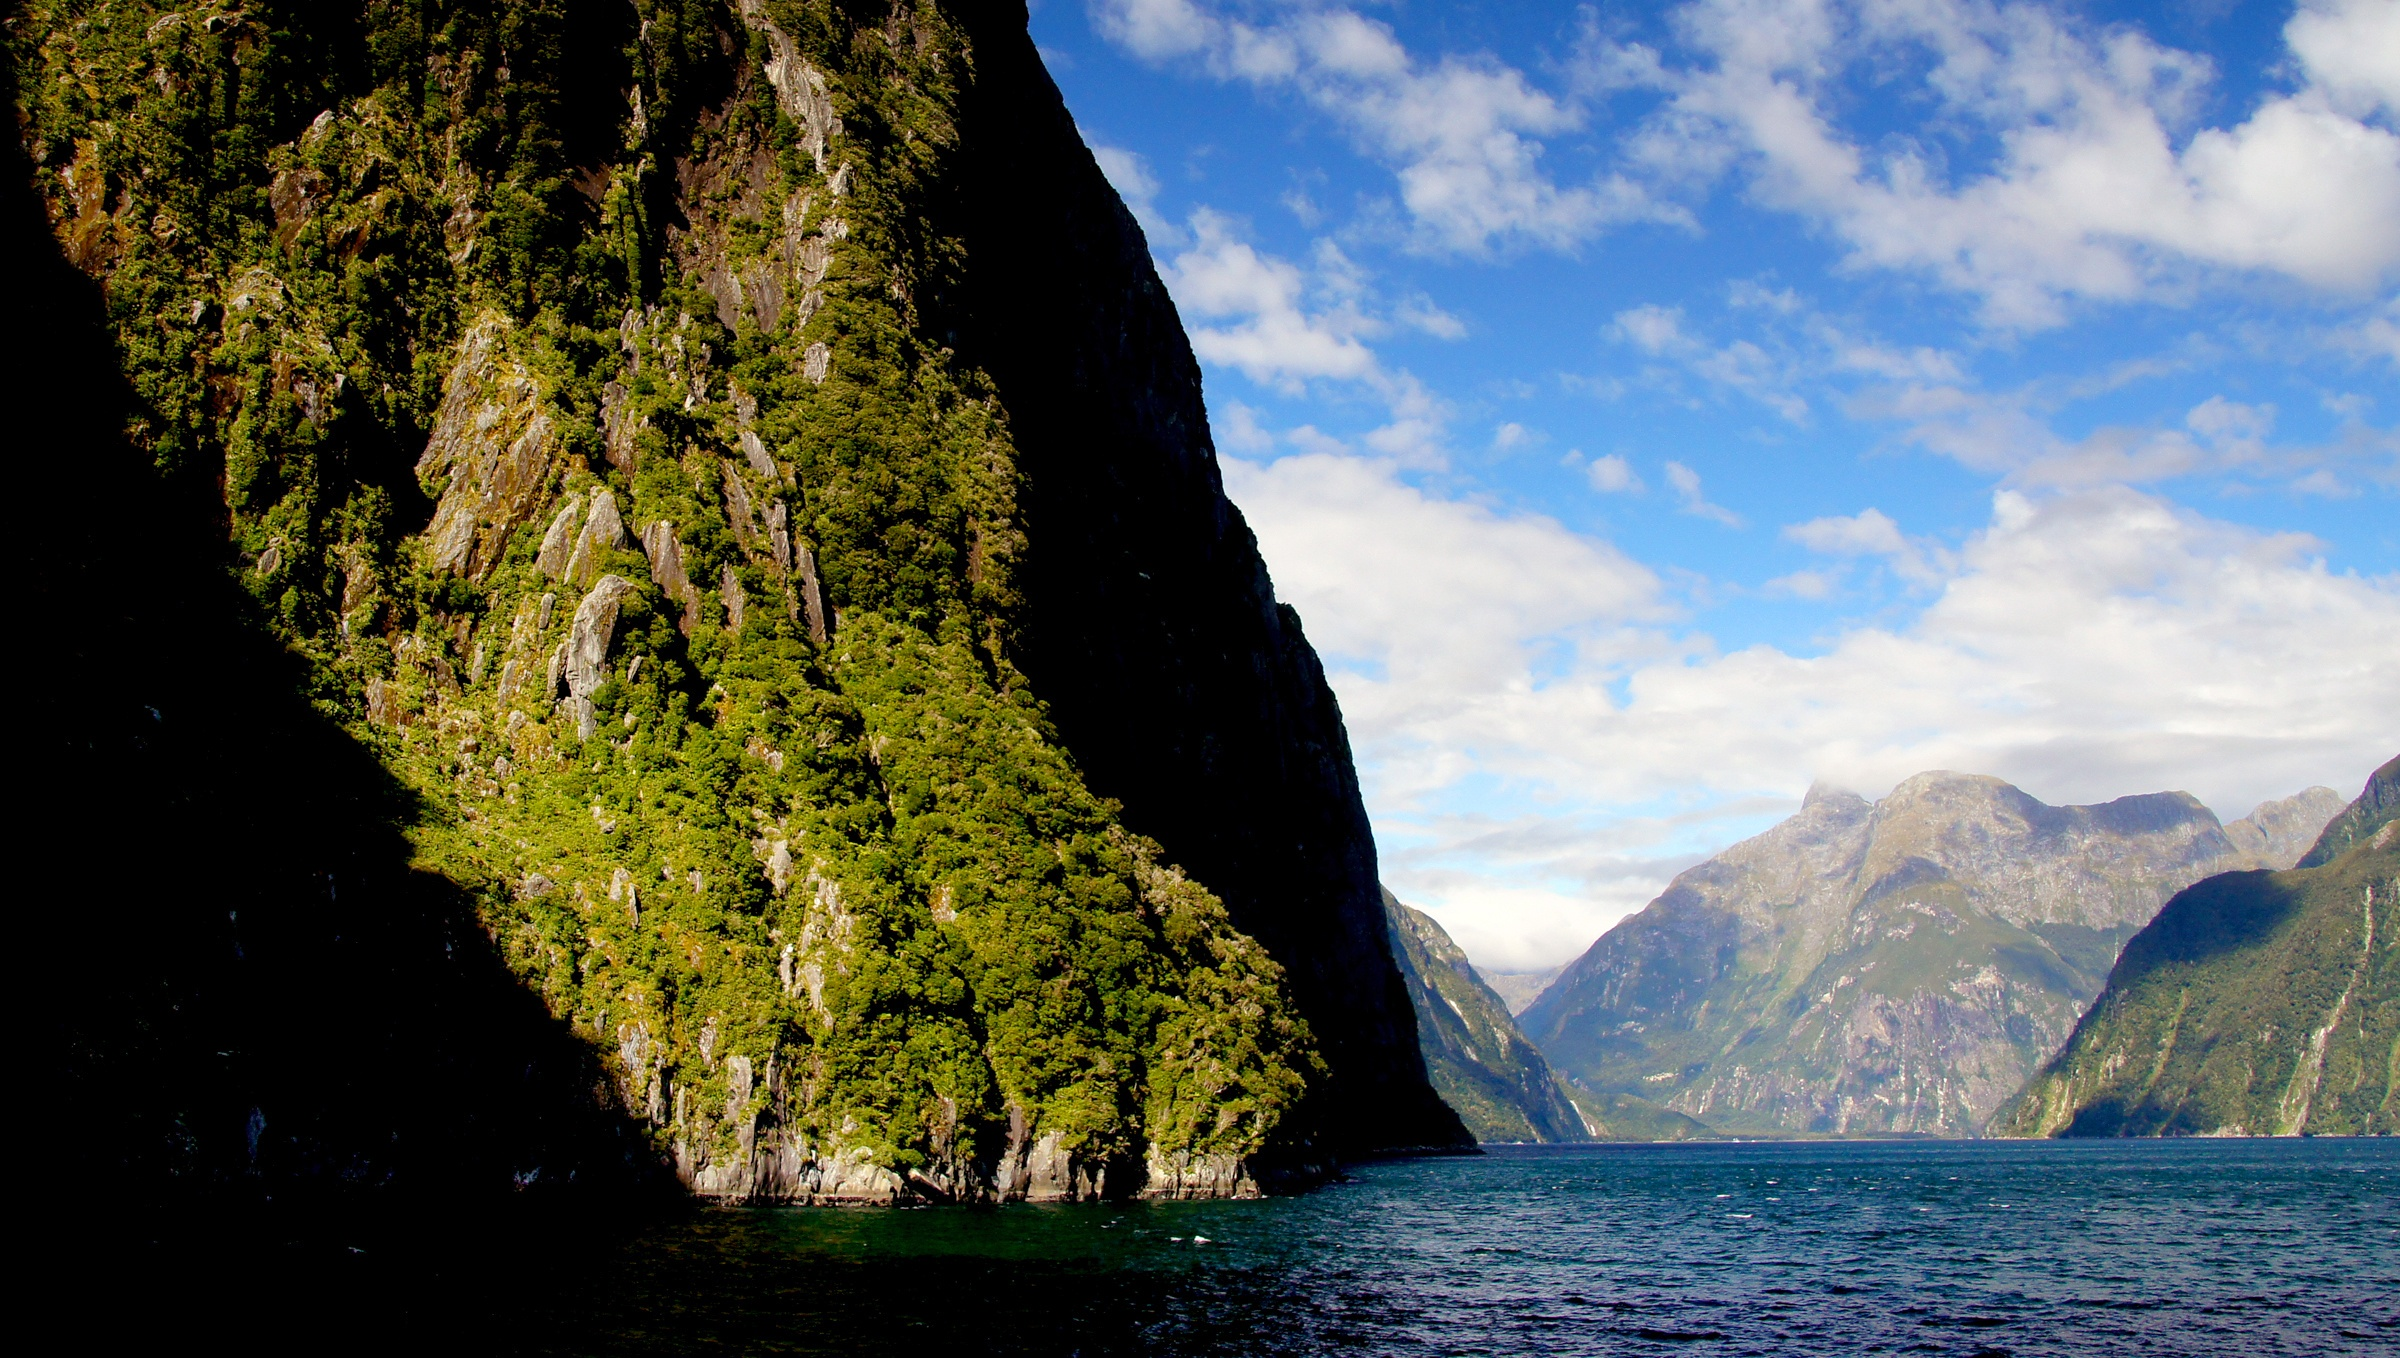 Free download high resolution image - free image free photo free stock image public domain picture -The Fiordland National Park